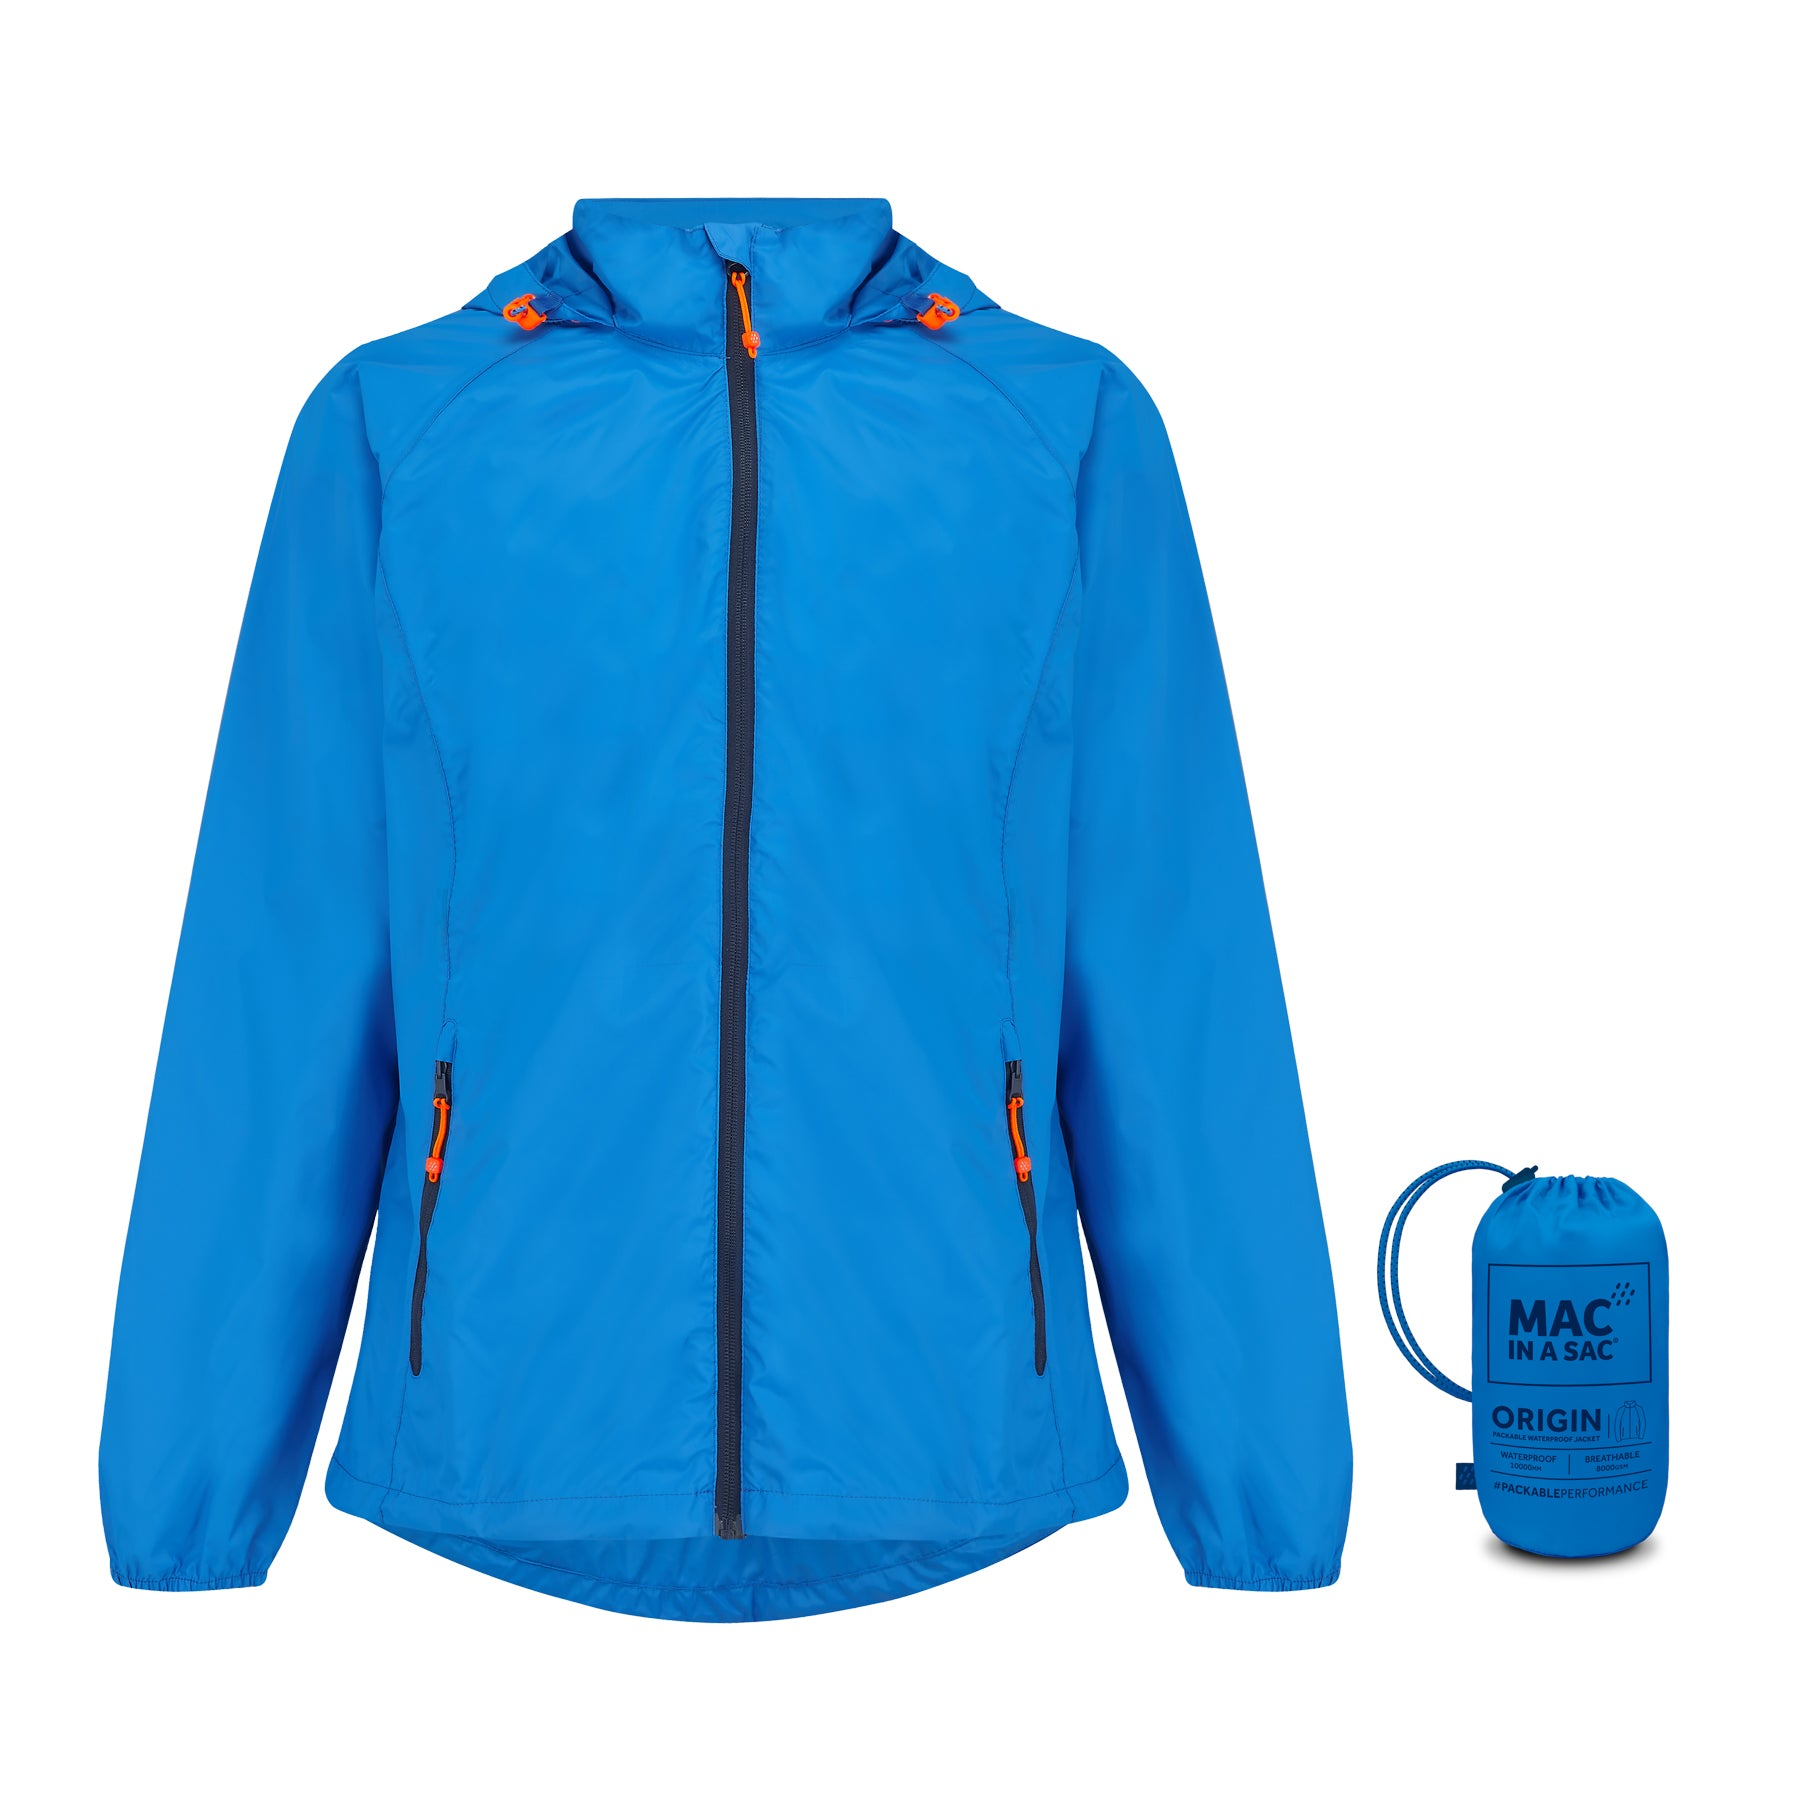 Origin Packable Waterproof Jacket - Ocean